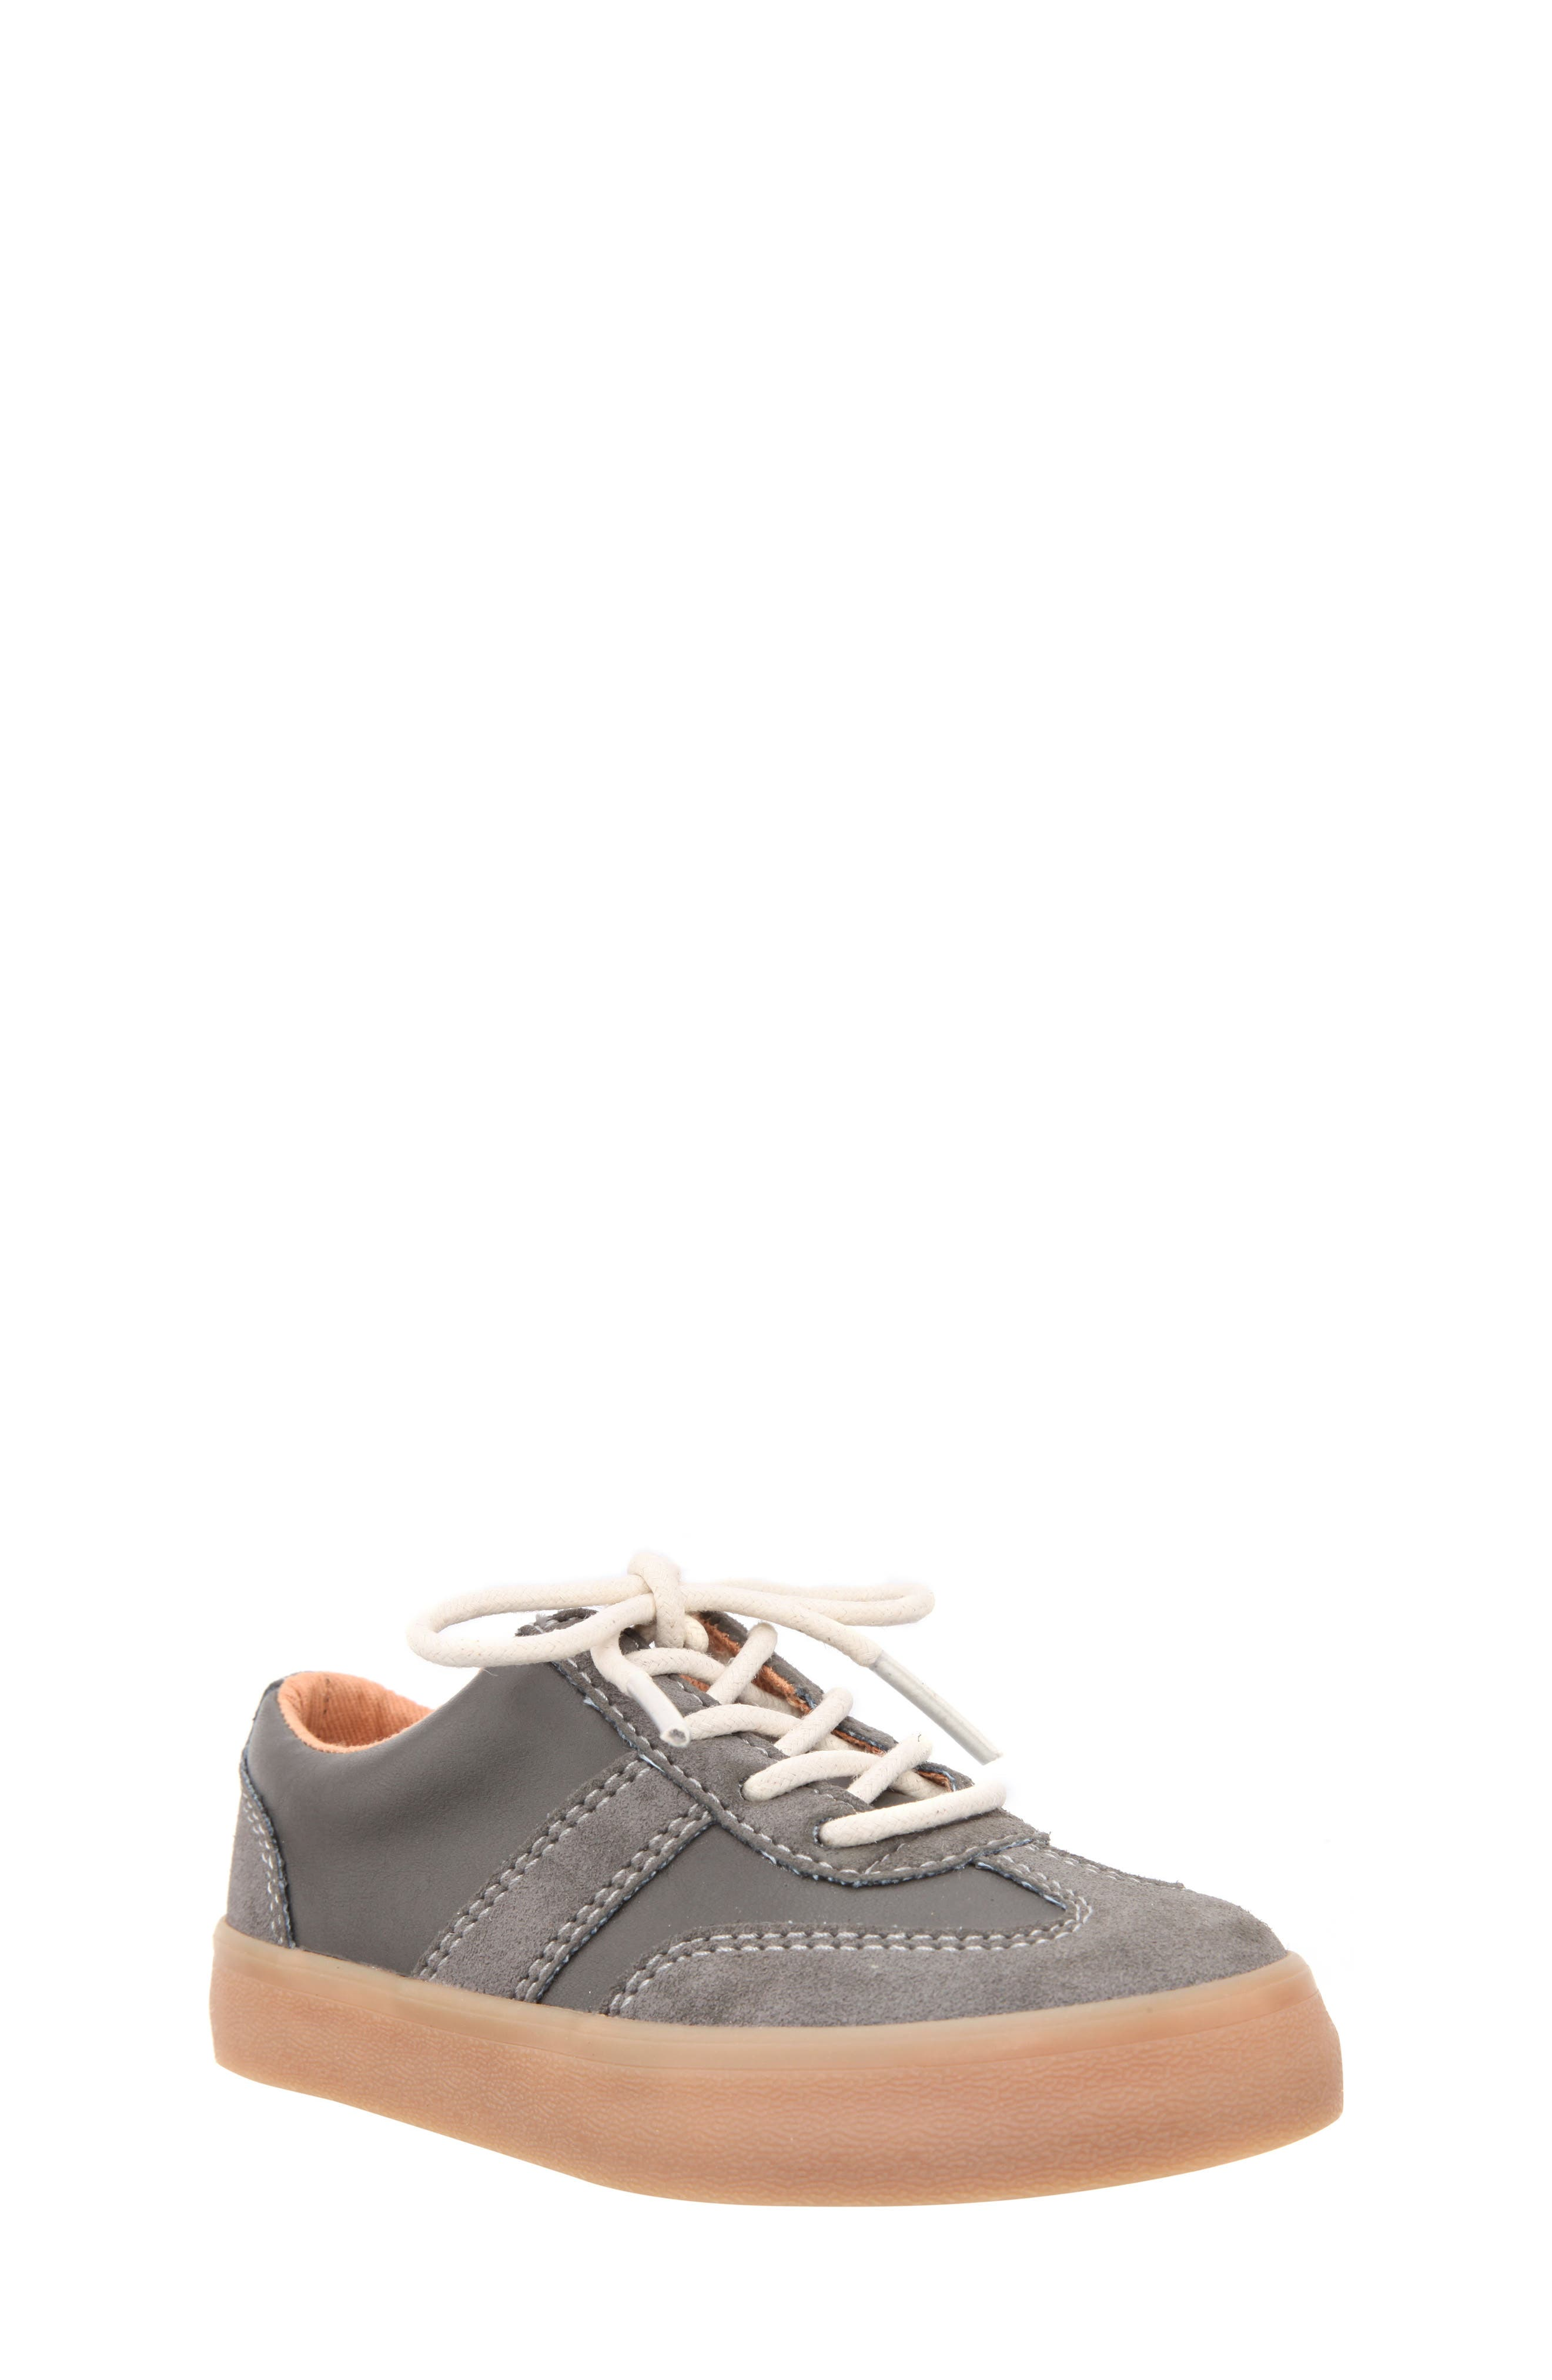 Neal Low Top Sneaker,                         Main,                         color, 064